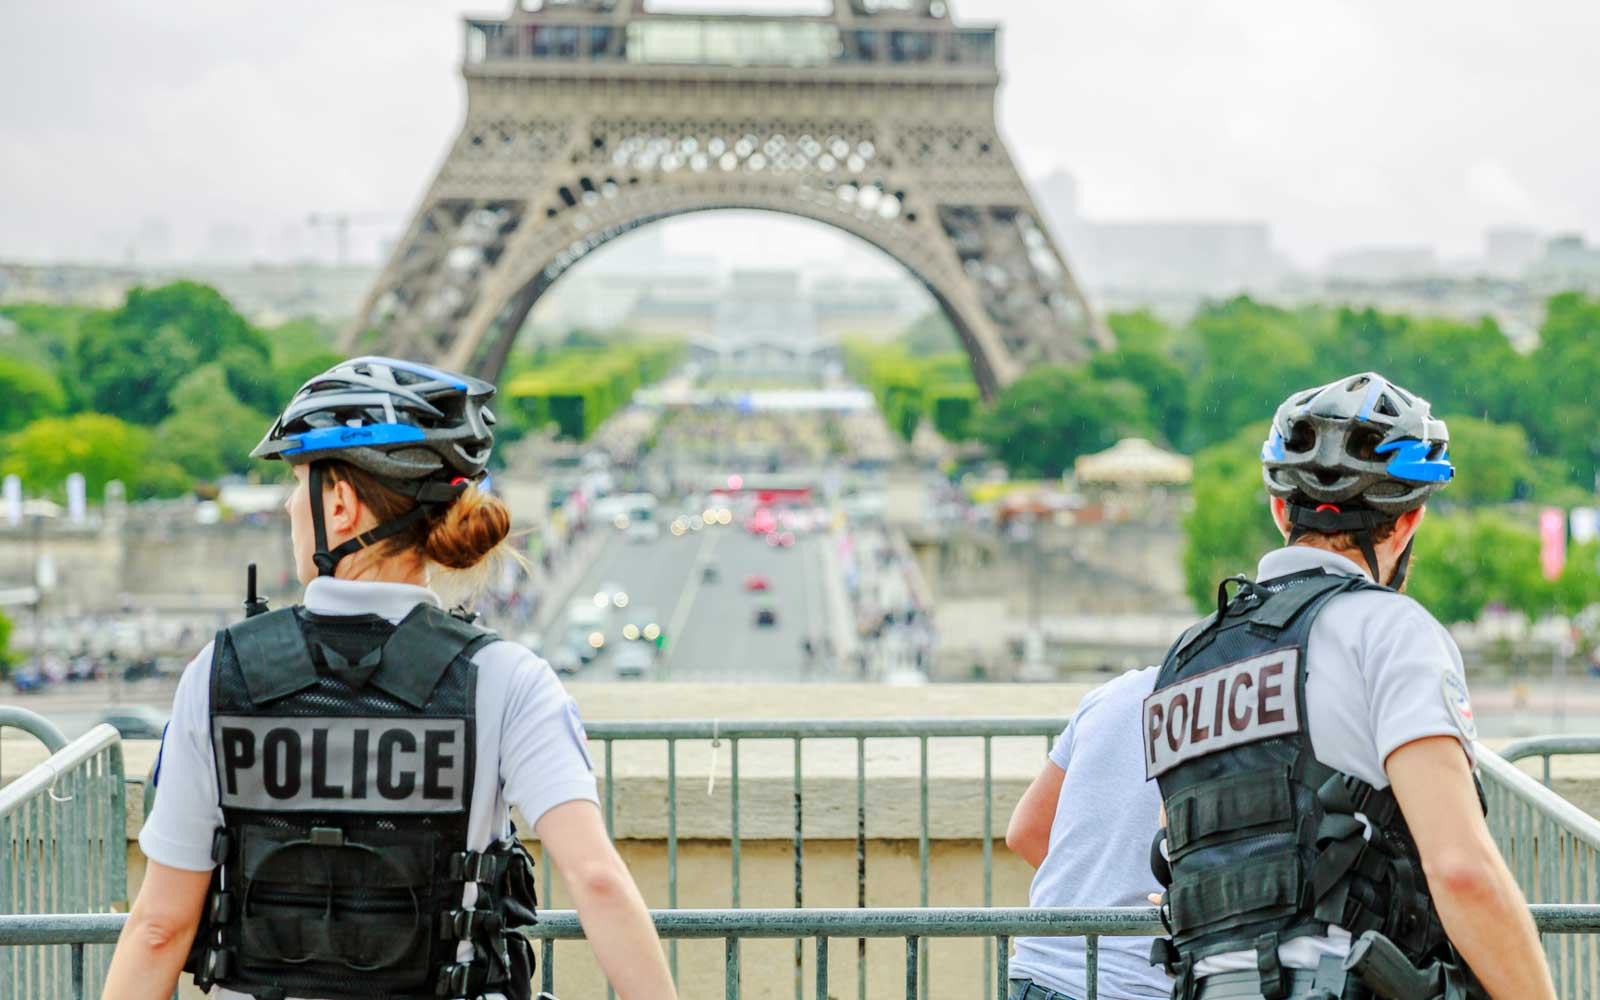 Paris Is Dedicating 5,000 Extra Police Officers to Protecting Tourists This Summer